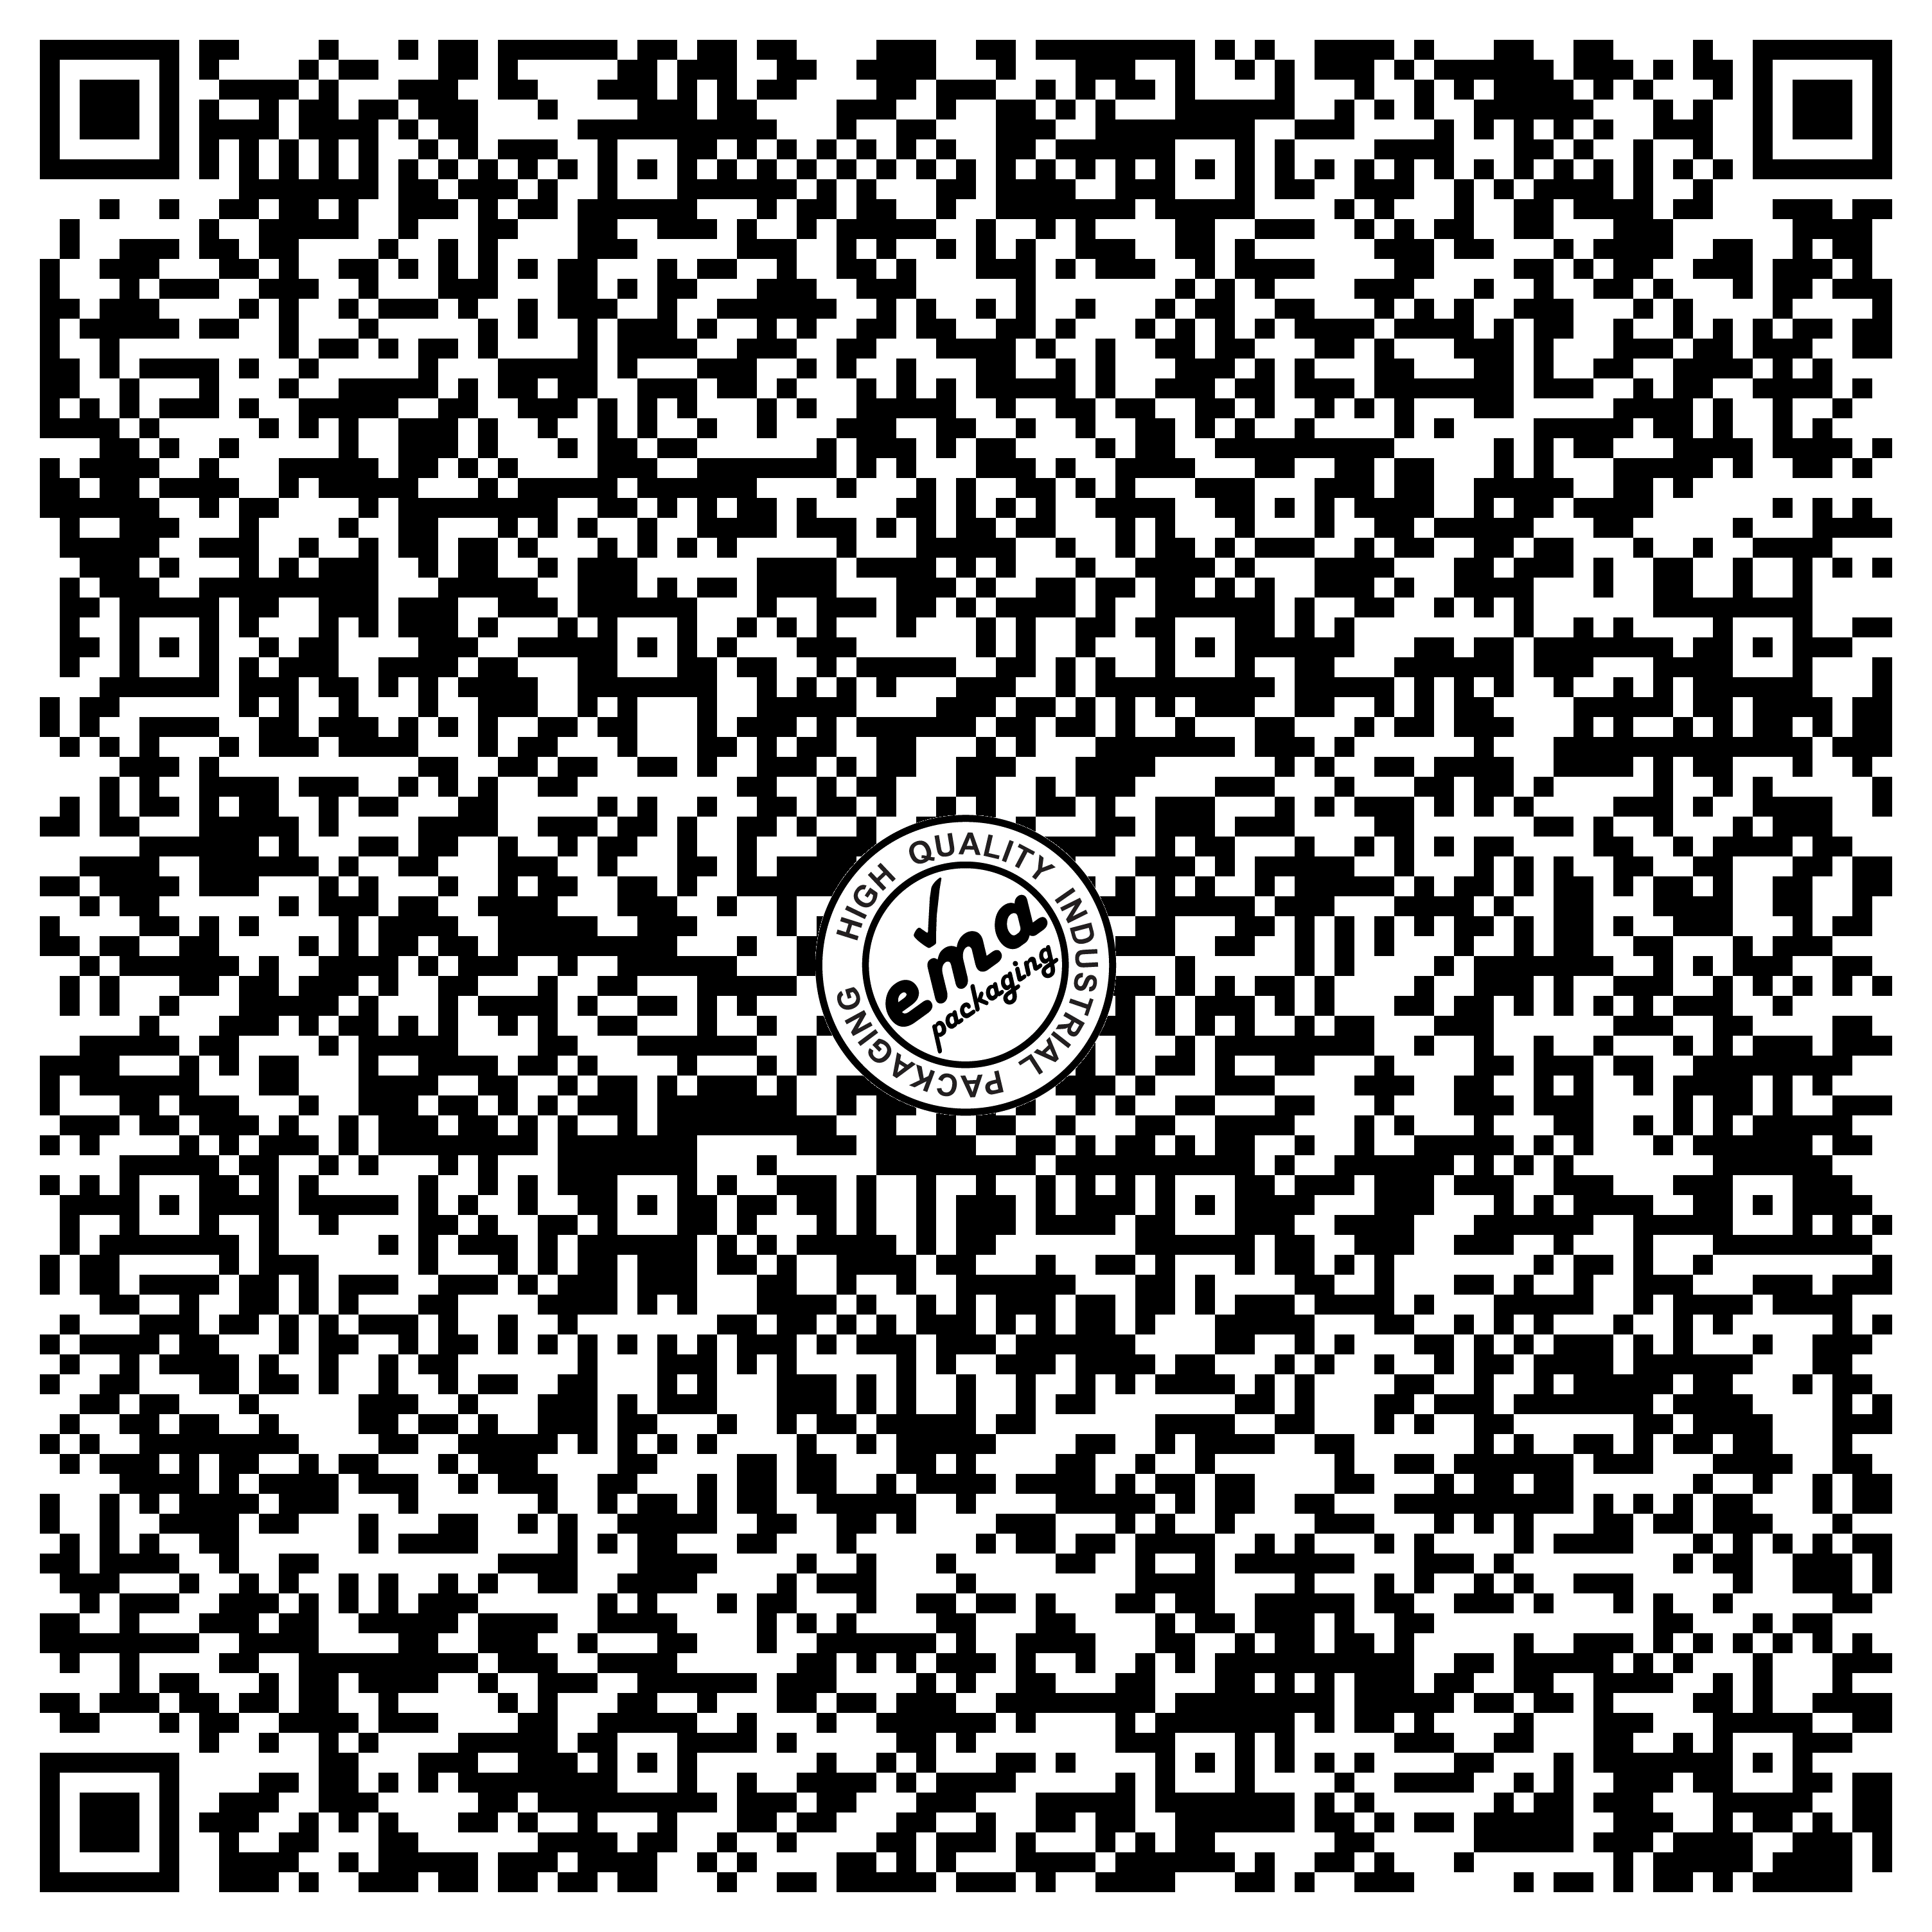 Scan / add address in mobile.